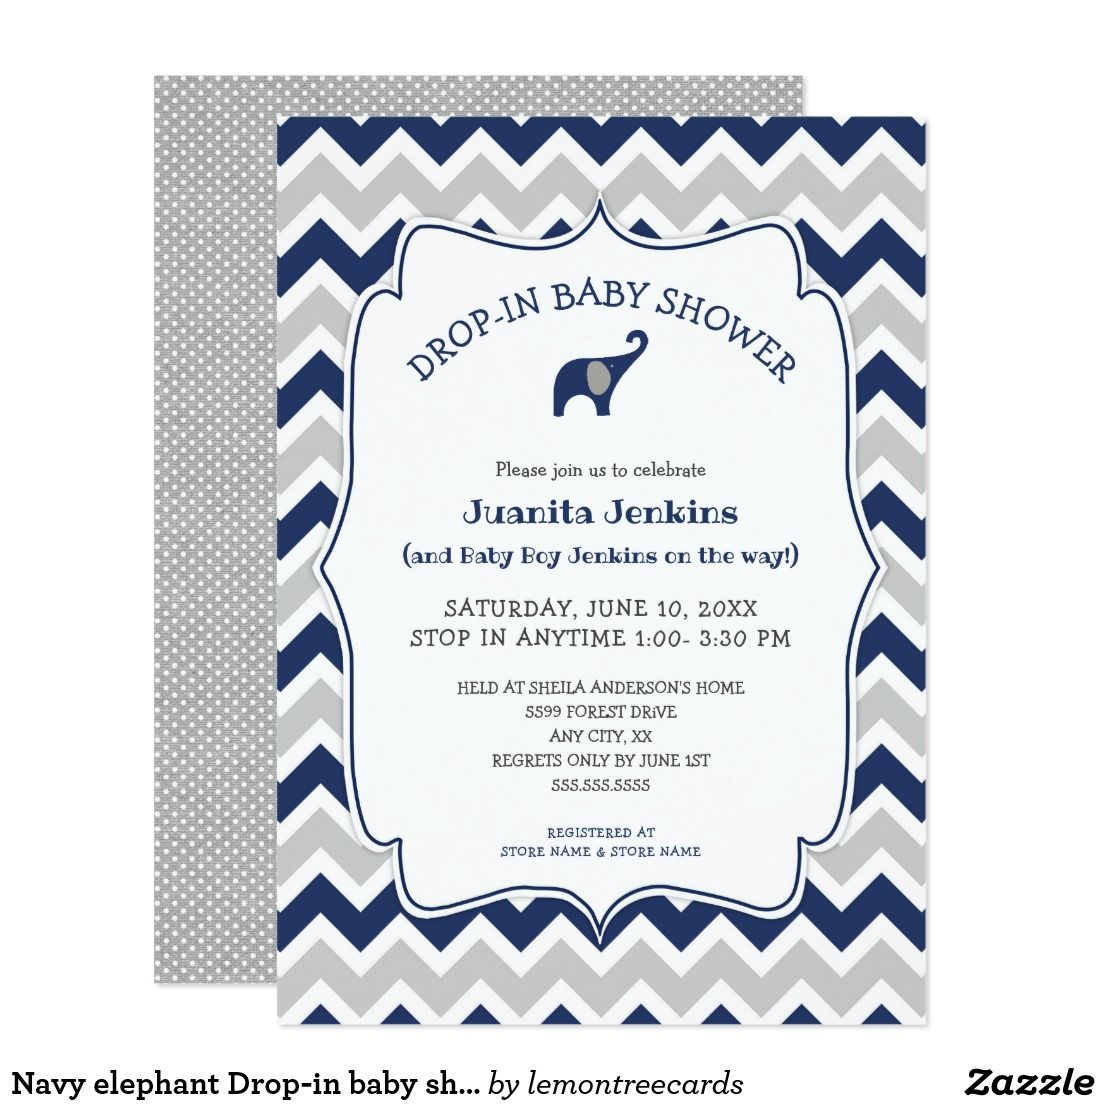 Navy Elephant Drop In Baby Shower Open House Invitation Zazzle